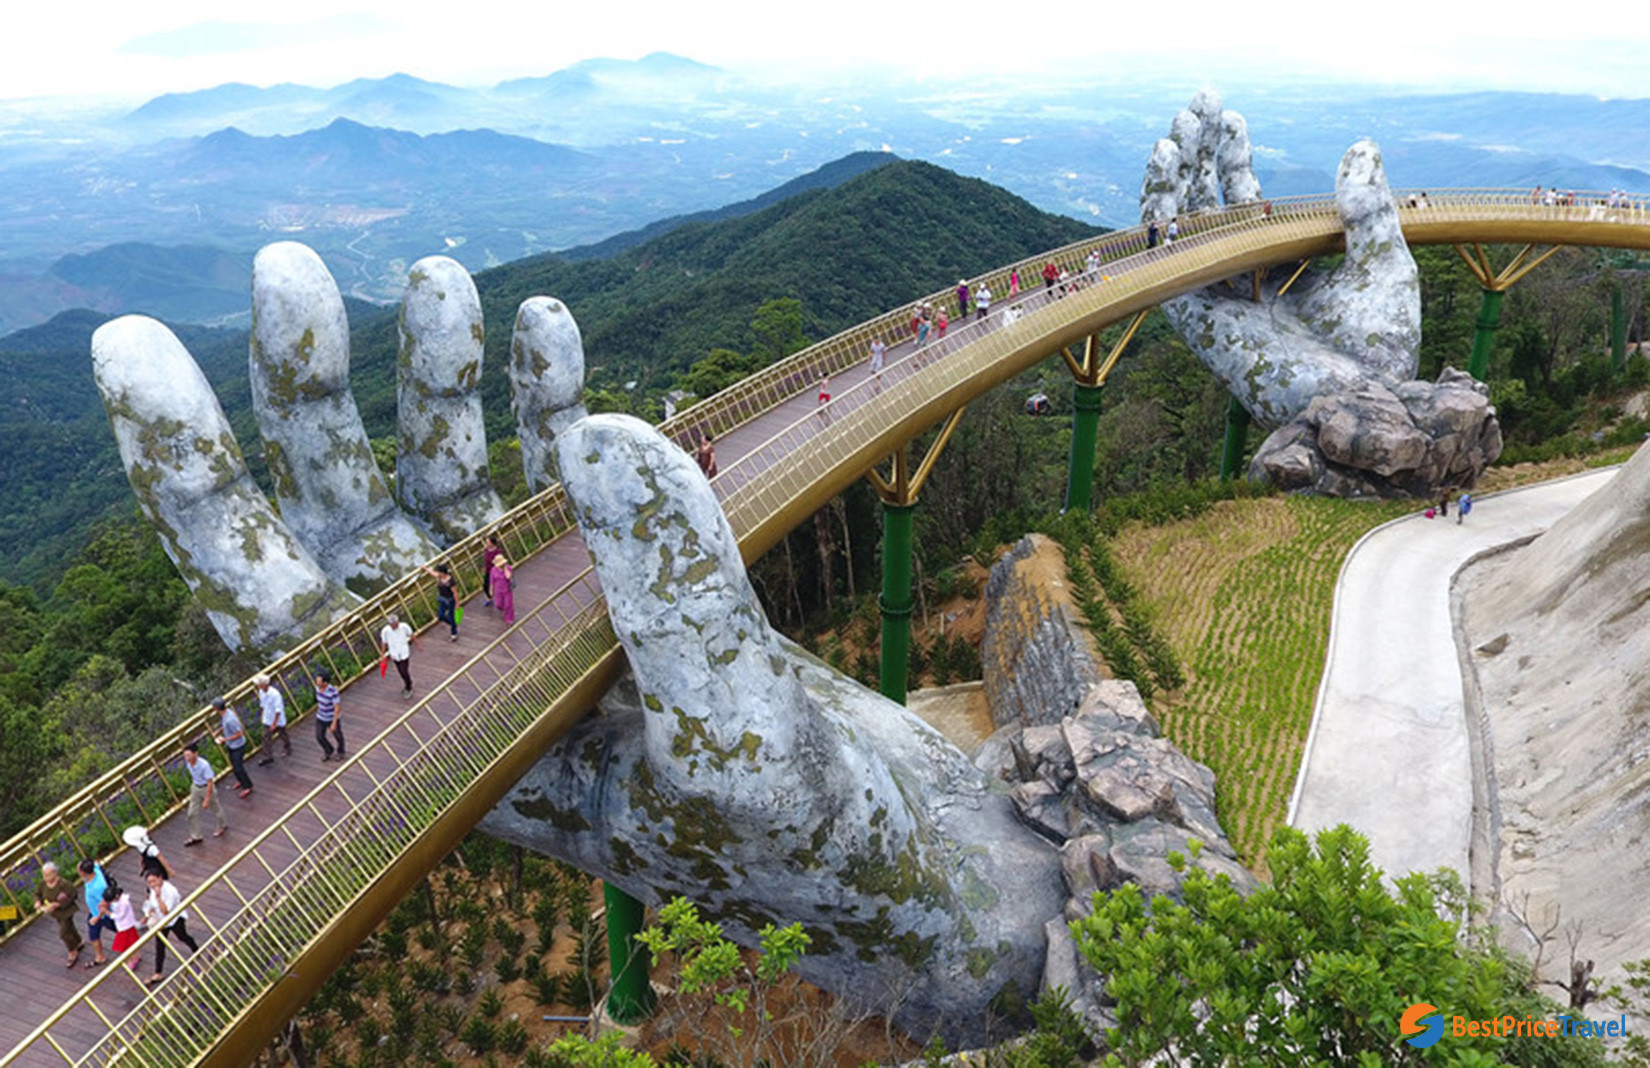 Golden Bridge - Bana Hills (Danang, Vietnam)